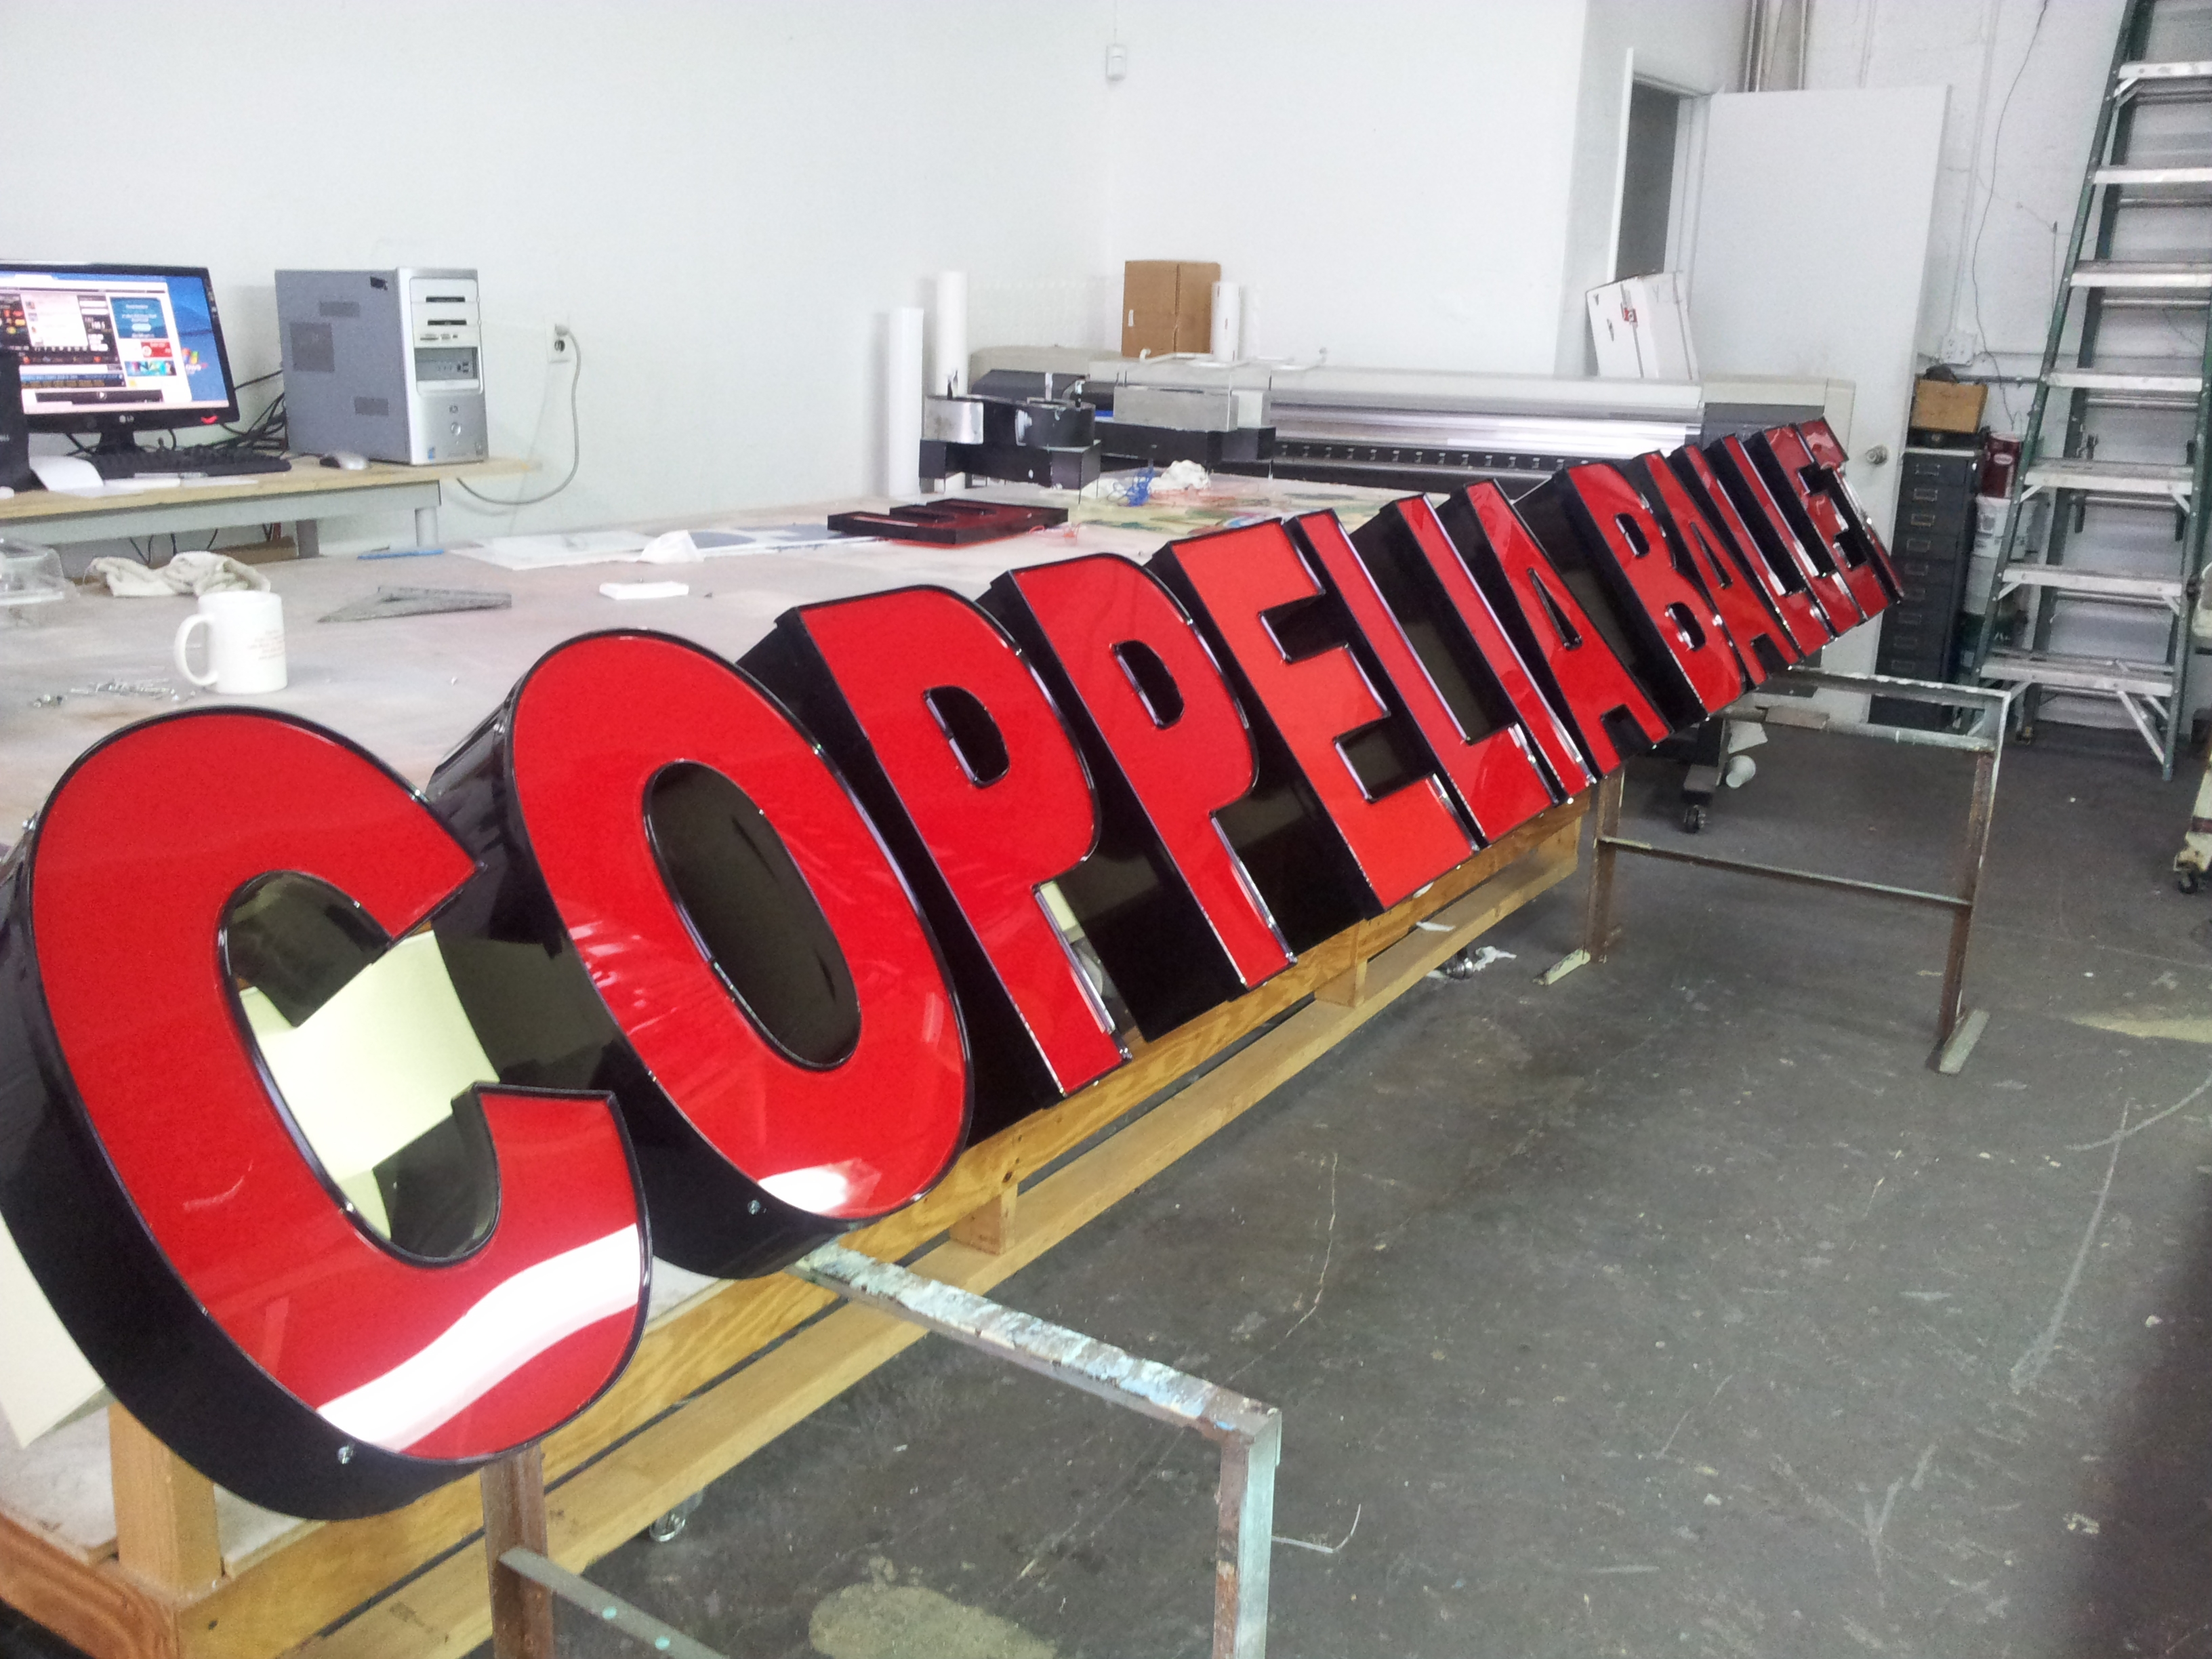 coppelia ballet sign.JPG